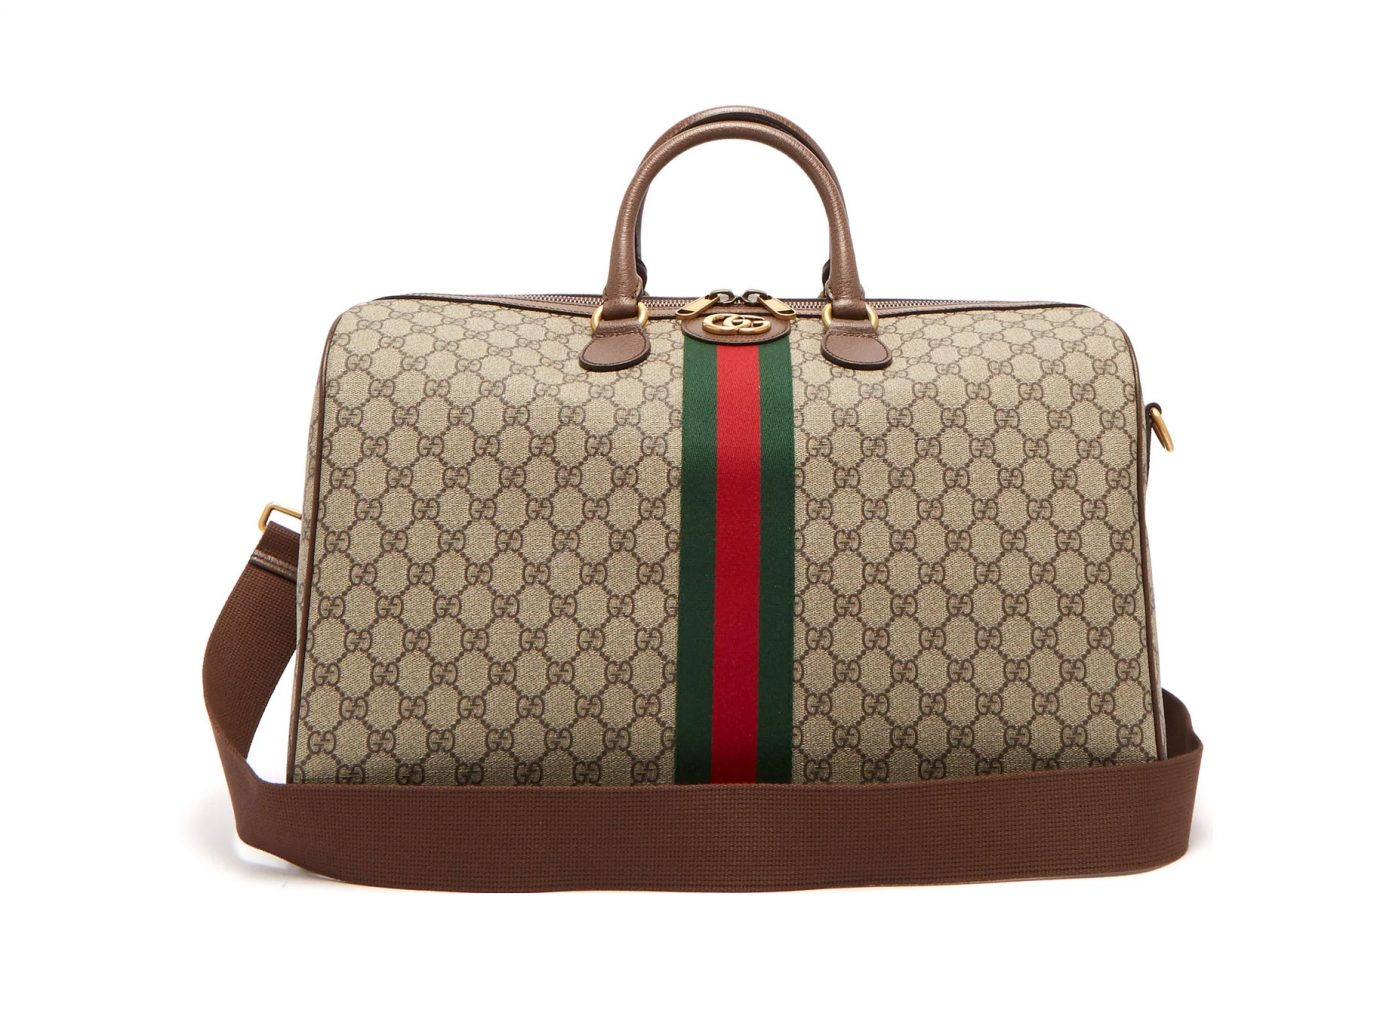 Gucci Ophidia GG Supreme logo weekend bag